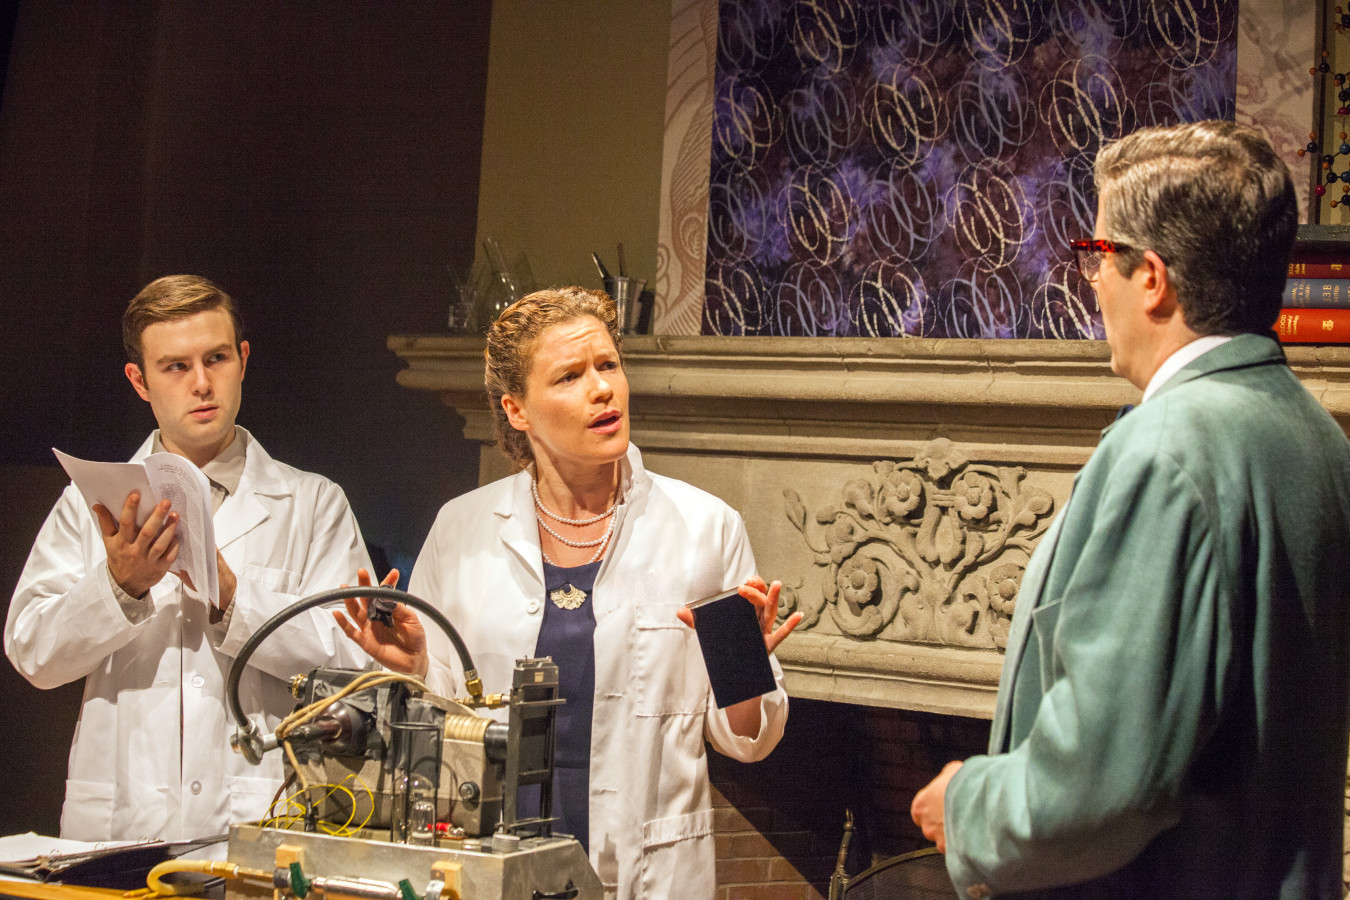 Luke Brady as Raymond Gosling, Laura Lowry as Rosalind Franklin and Matt Weimer as Maurice Wilkins